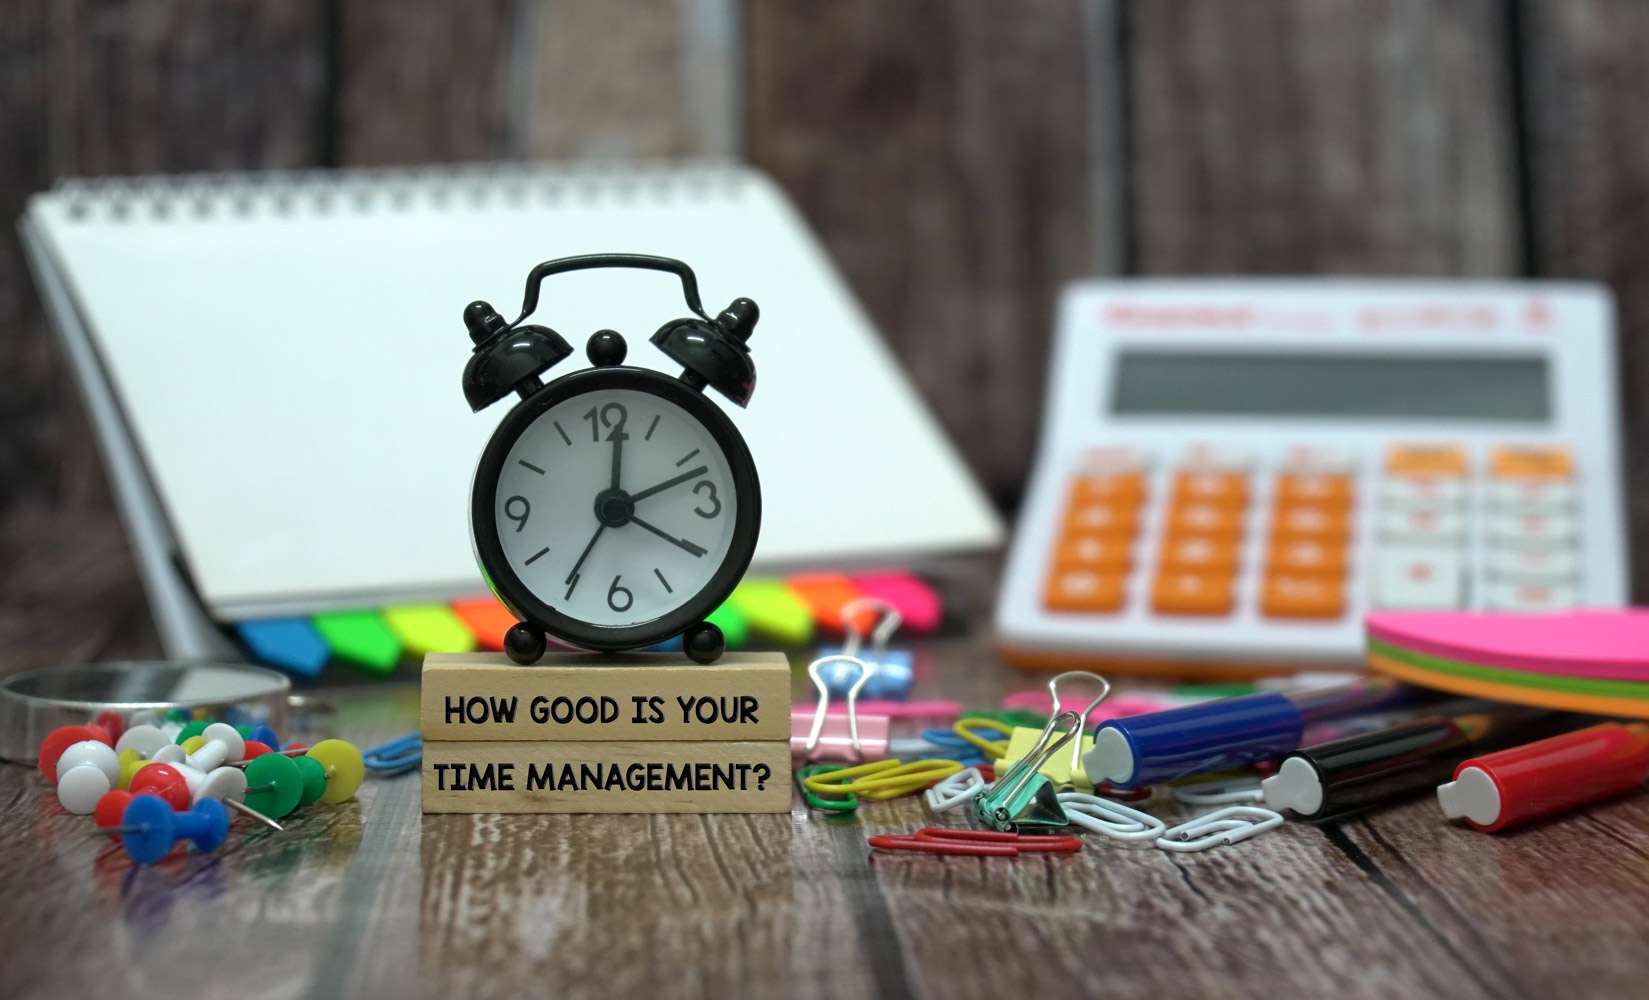 EARLY LESSONS IN TIME MANAGEMENT